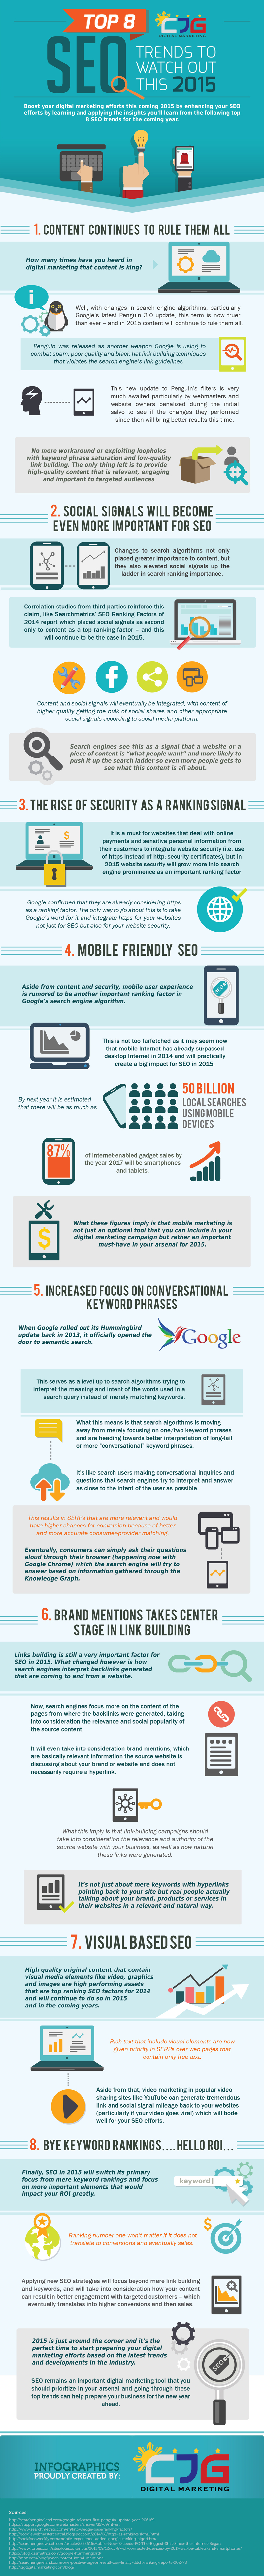 Top-8-SEO-Trends-to-Watch-Out-this-2015